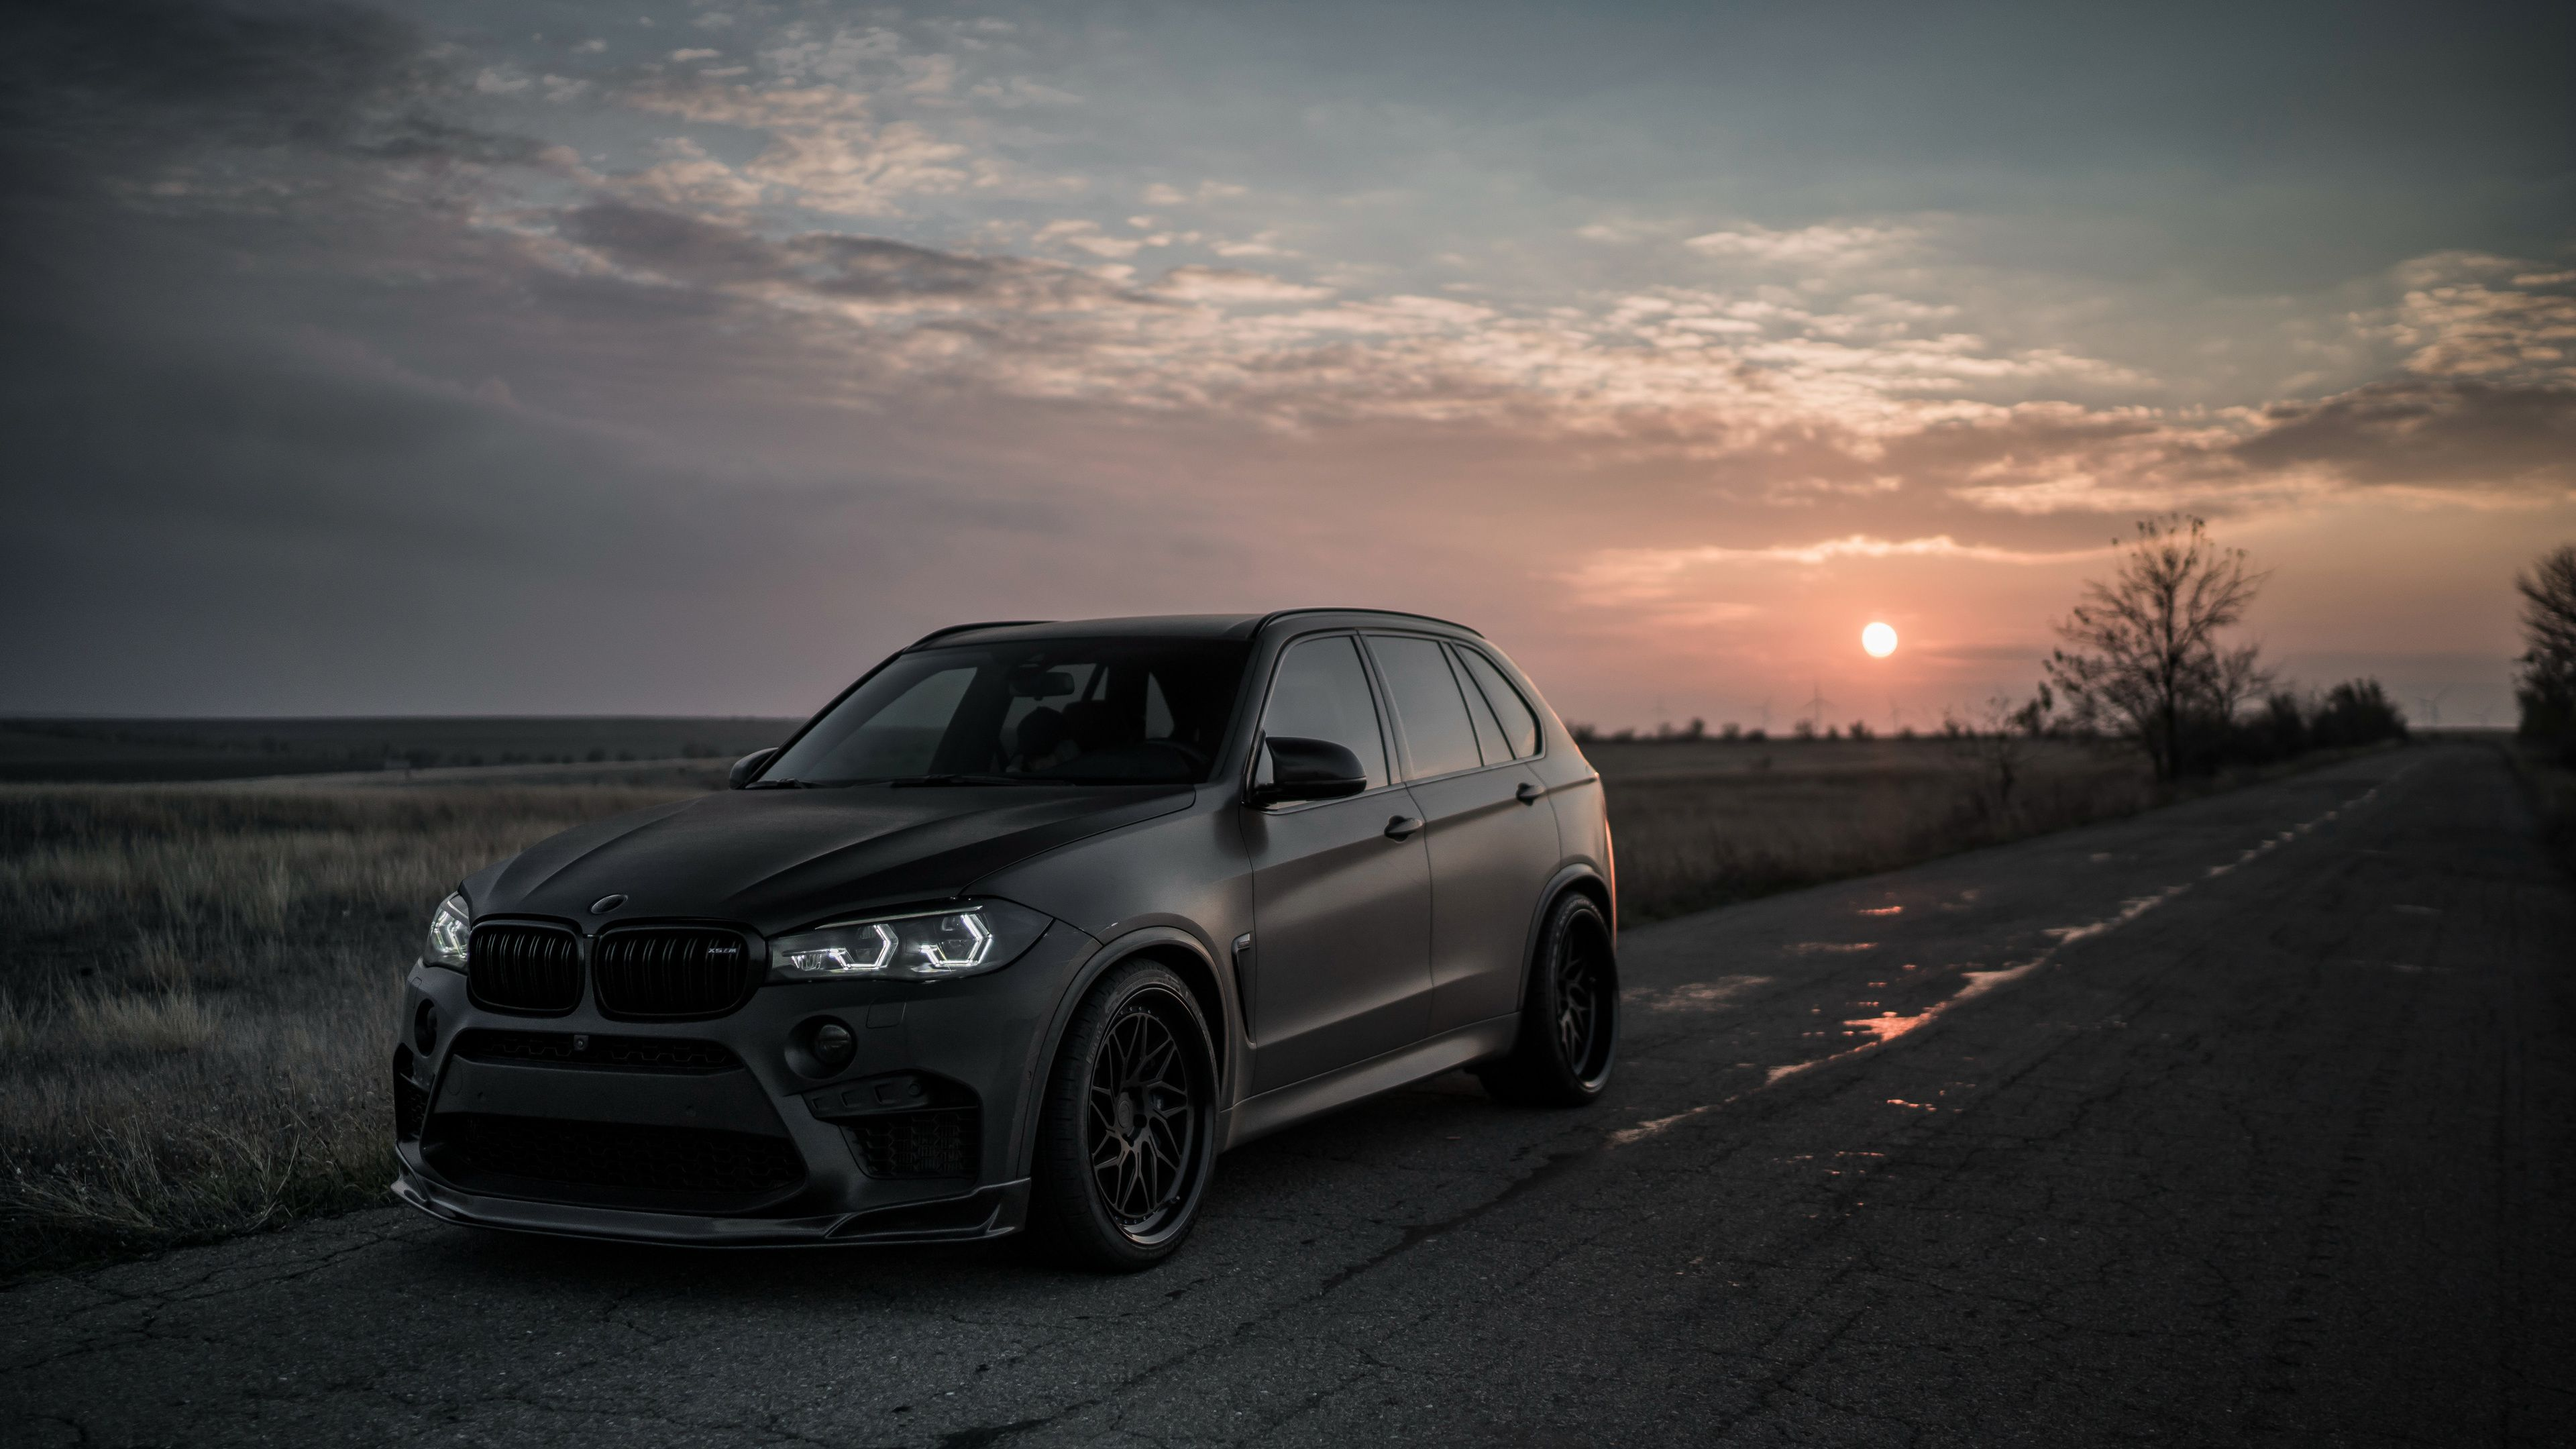 Z Performance Bmw X K Hd Wallpapers Cars Wallpapers Bmw X Wallpapers Bmw Wallpapers K Wallpapers  Cars Wallpapers